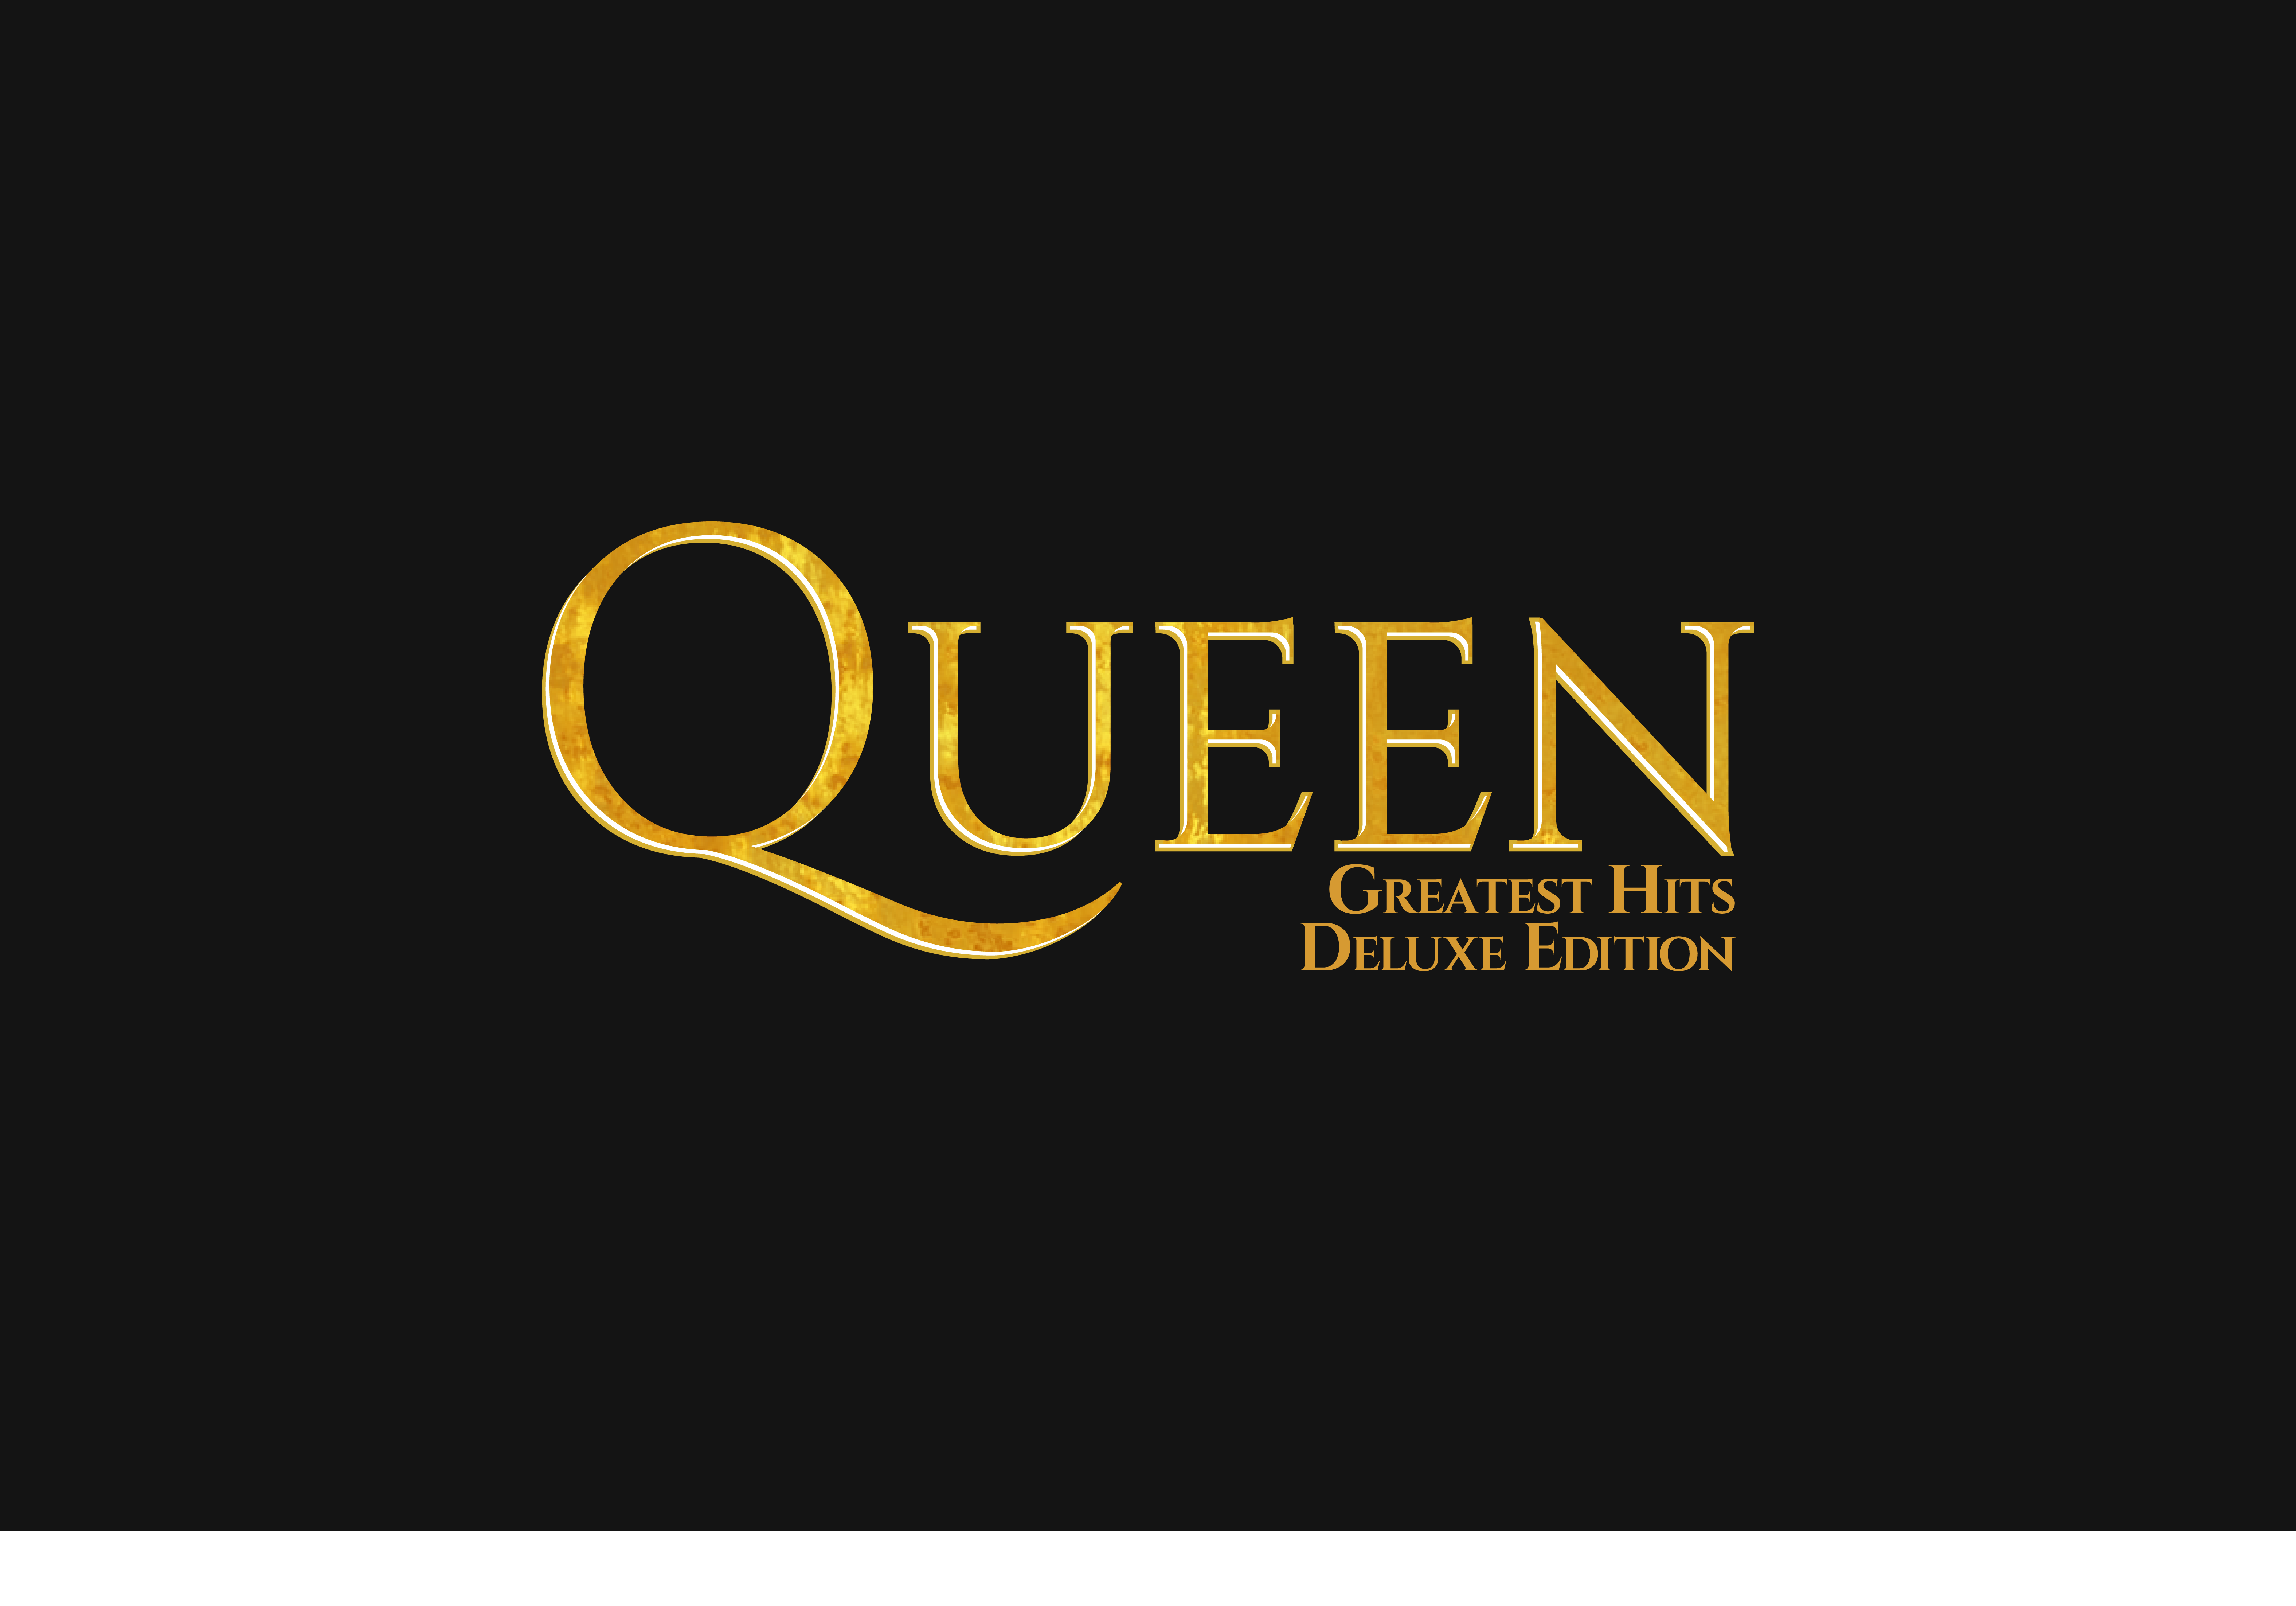 Queen Greatest Hits Deluxe Edition